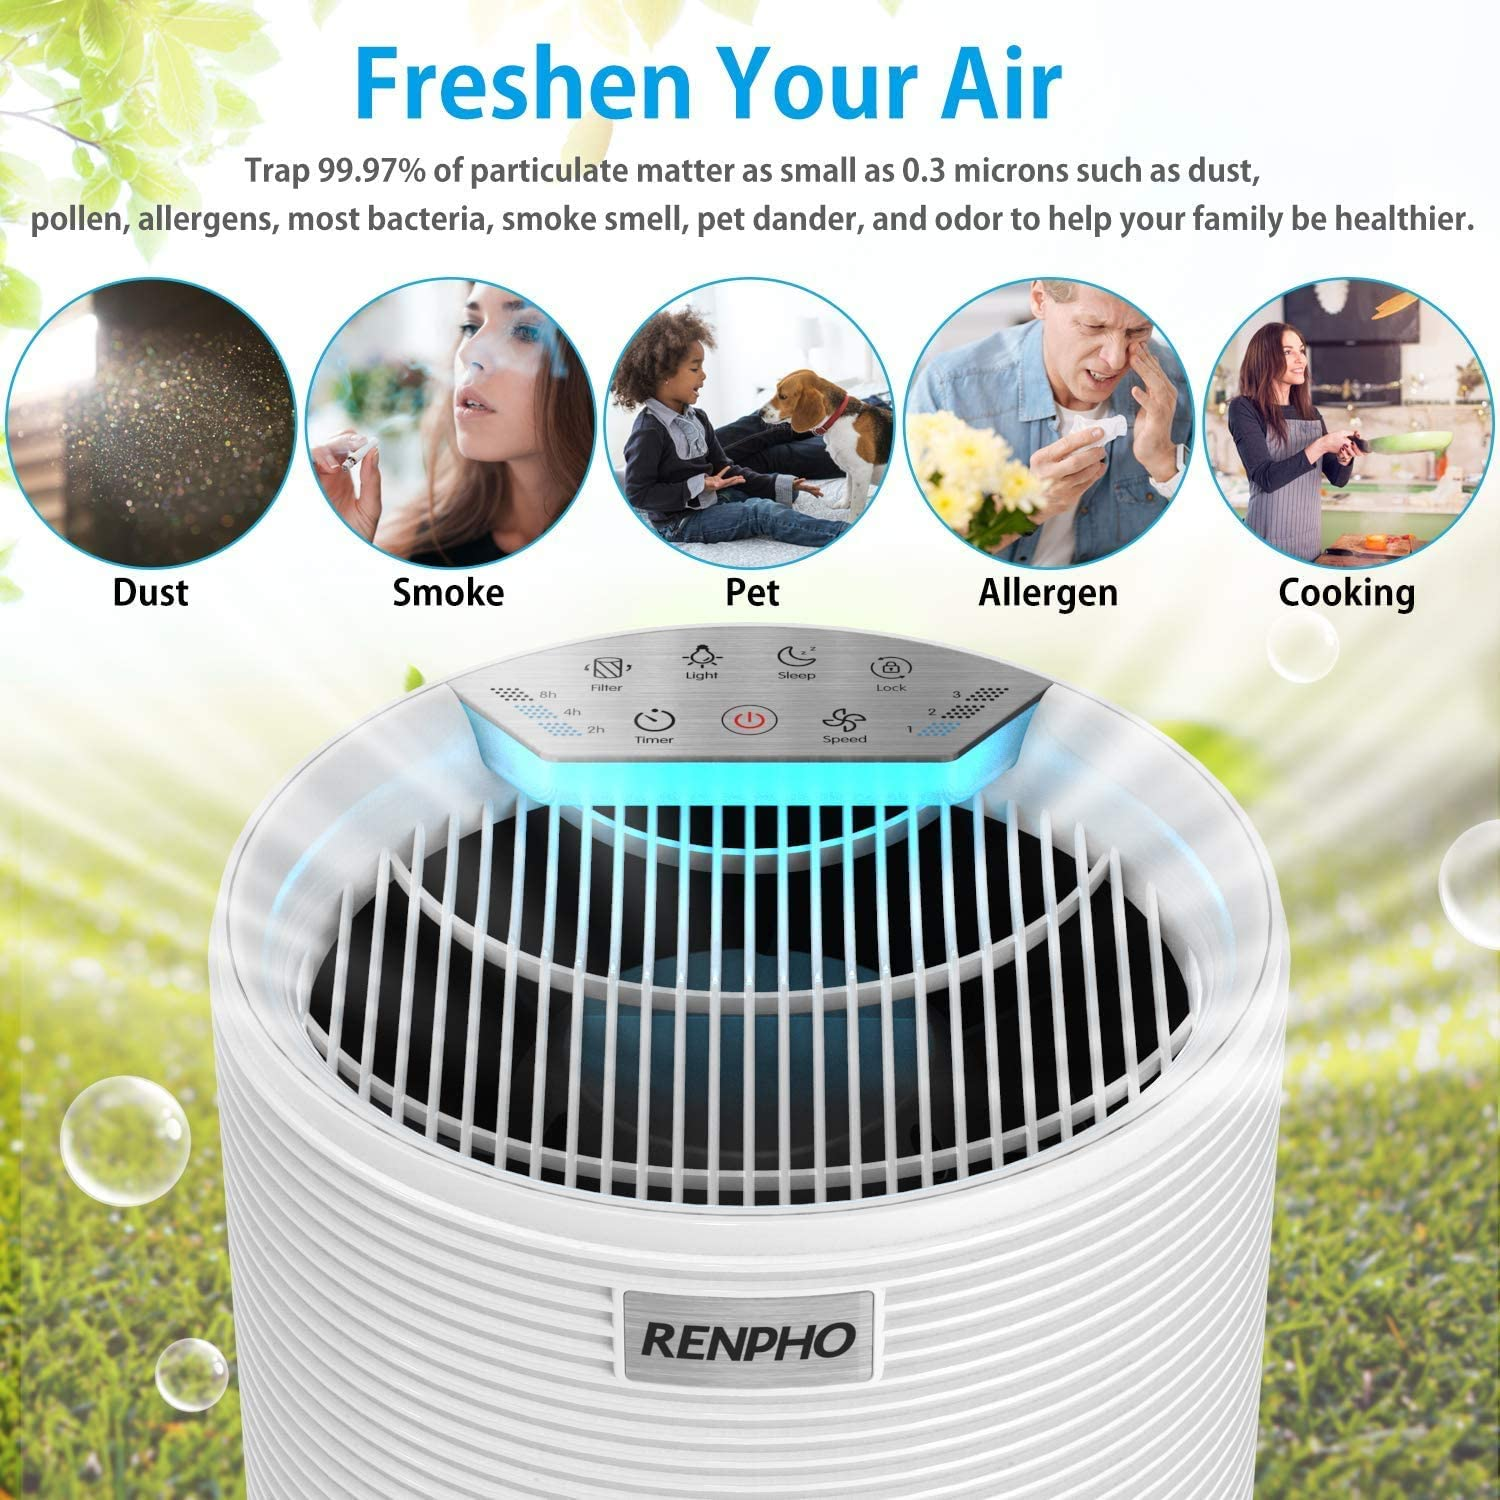 RENPHO Air Purifier for Allergies and Pets Hair with HEPA Filter WAS £89.99 NOW £62.99 w/code 68EGGFH5 @ Amazon